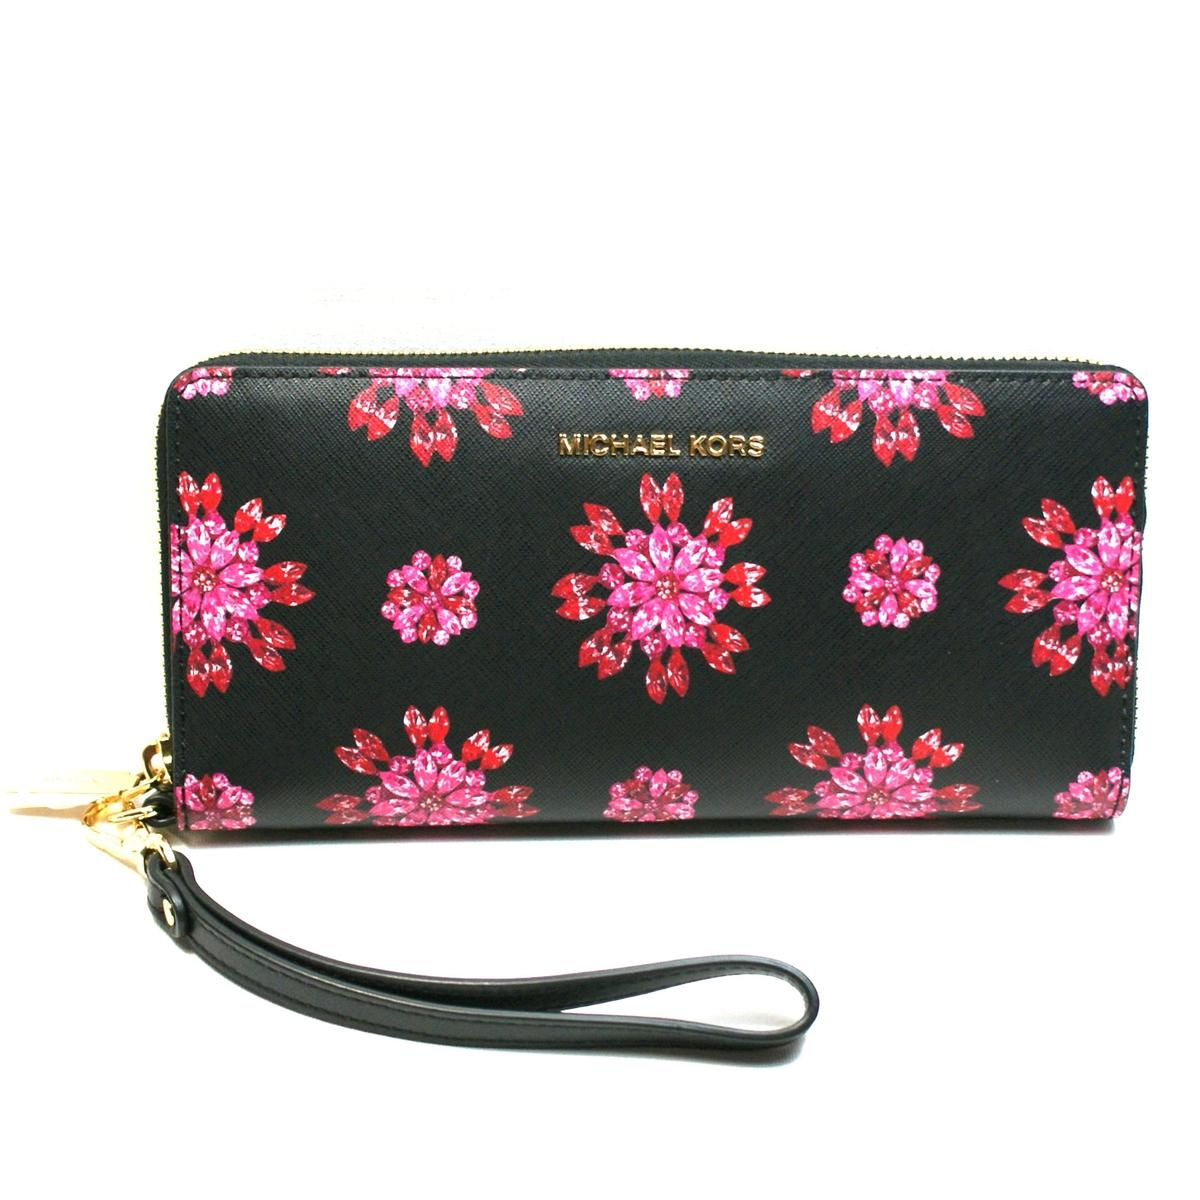 5b75290e38a4 Home · Michael Kors · Jet Set Travel Continental Leather Wallet  Clutch   Wristlet Black  Ultra Pnk. CLICK THUMBNAIL TO ZOOM. Found ...